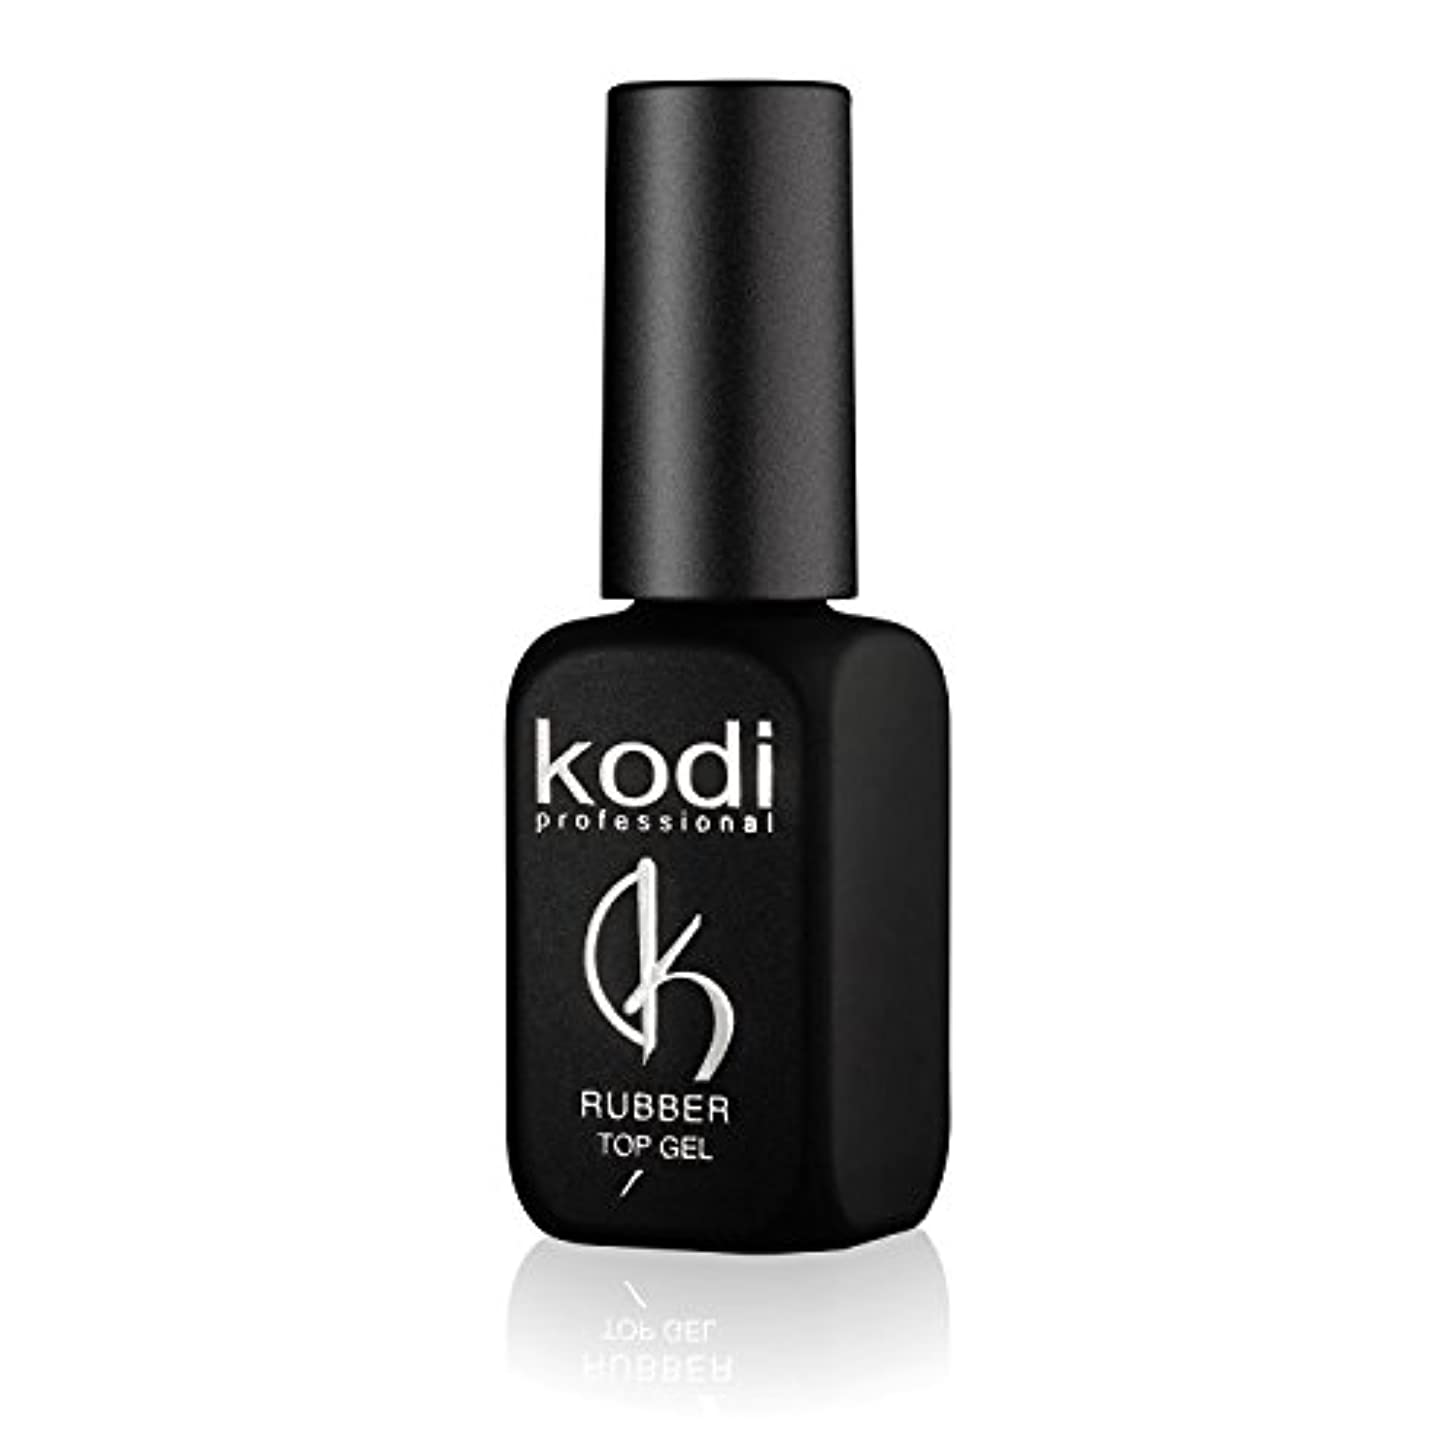 摂氏度運動鋸歯状Professional Rubber Top Gel By Kodi | 12ml 0.42 oz | Soak Off, Polish Fingernails Coat Gel | For Long Lasting...